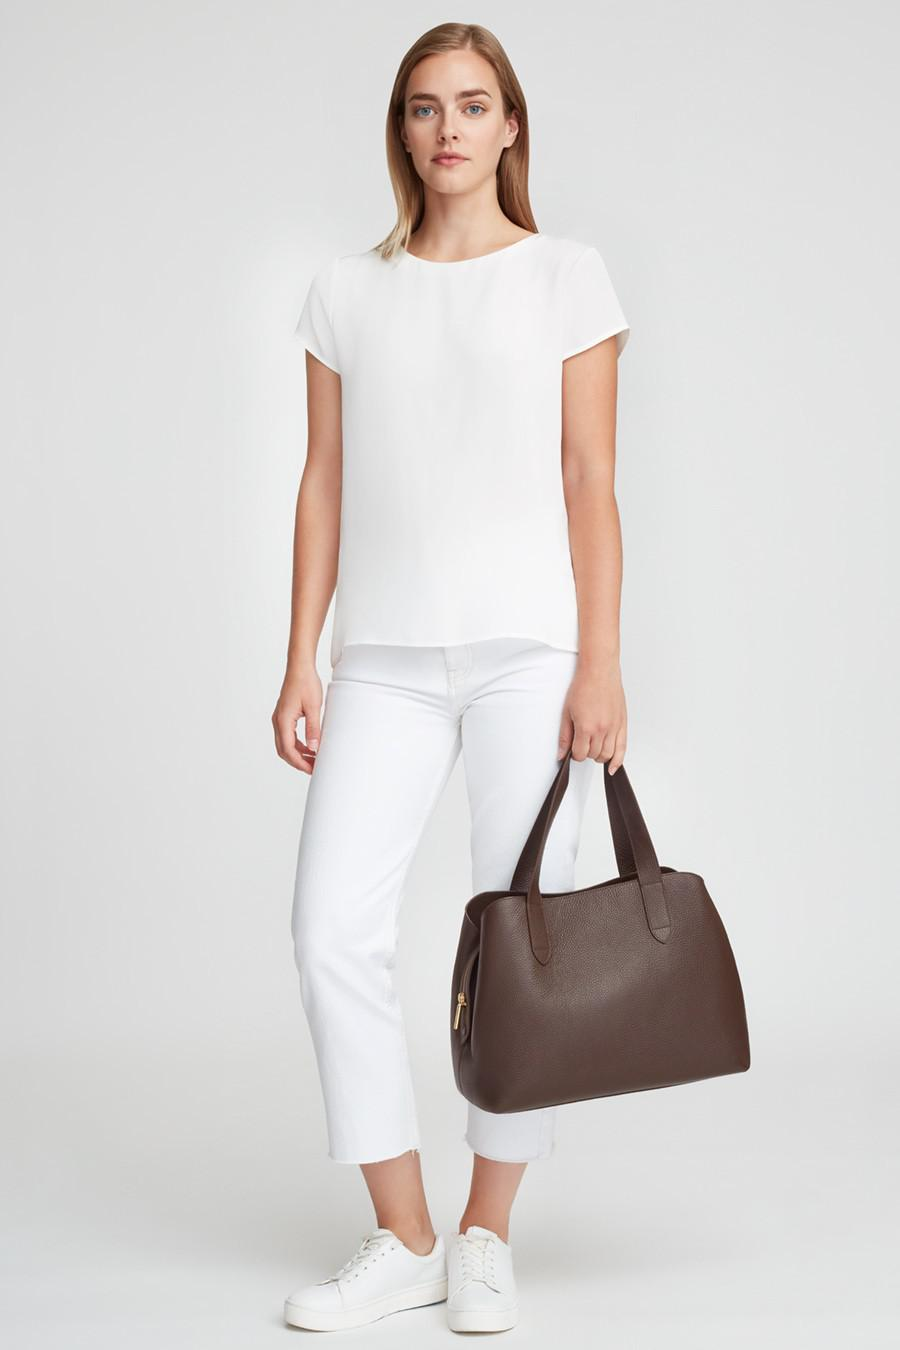 Women's Zippered Satchel Bag in Chocolate | Pebbled Leather by Cuyana 7